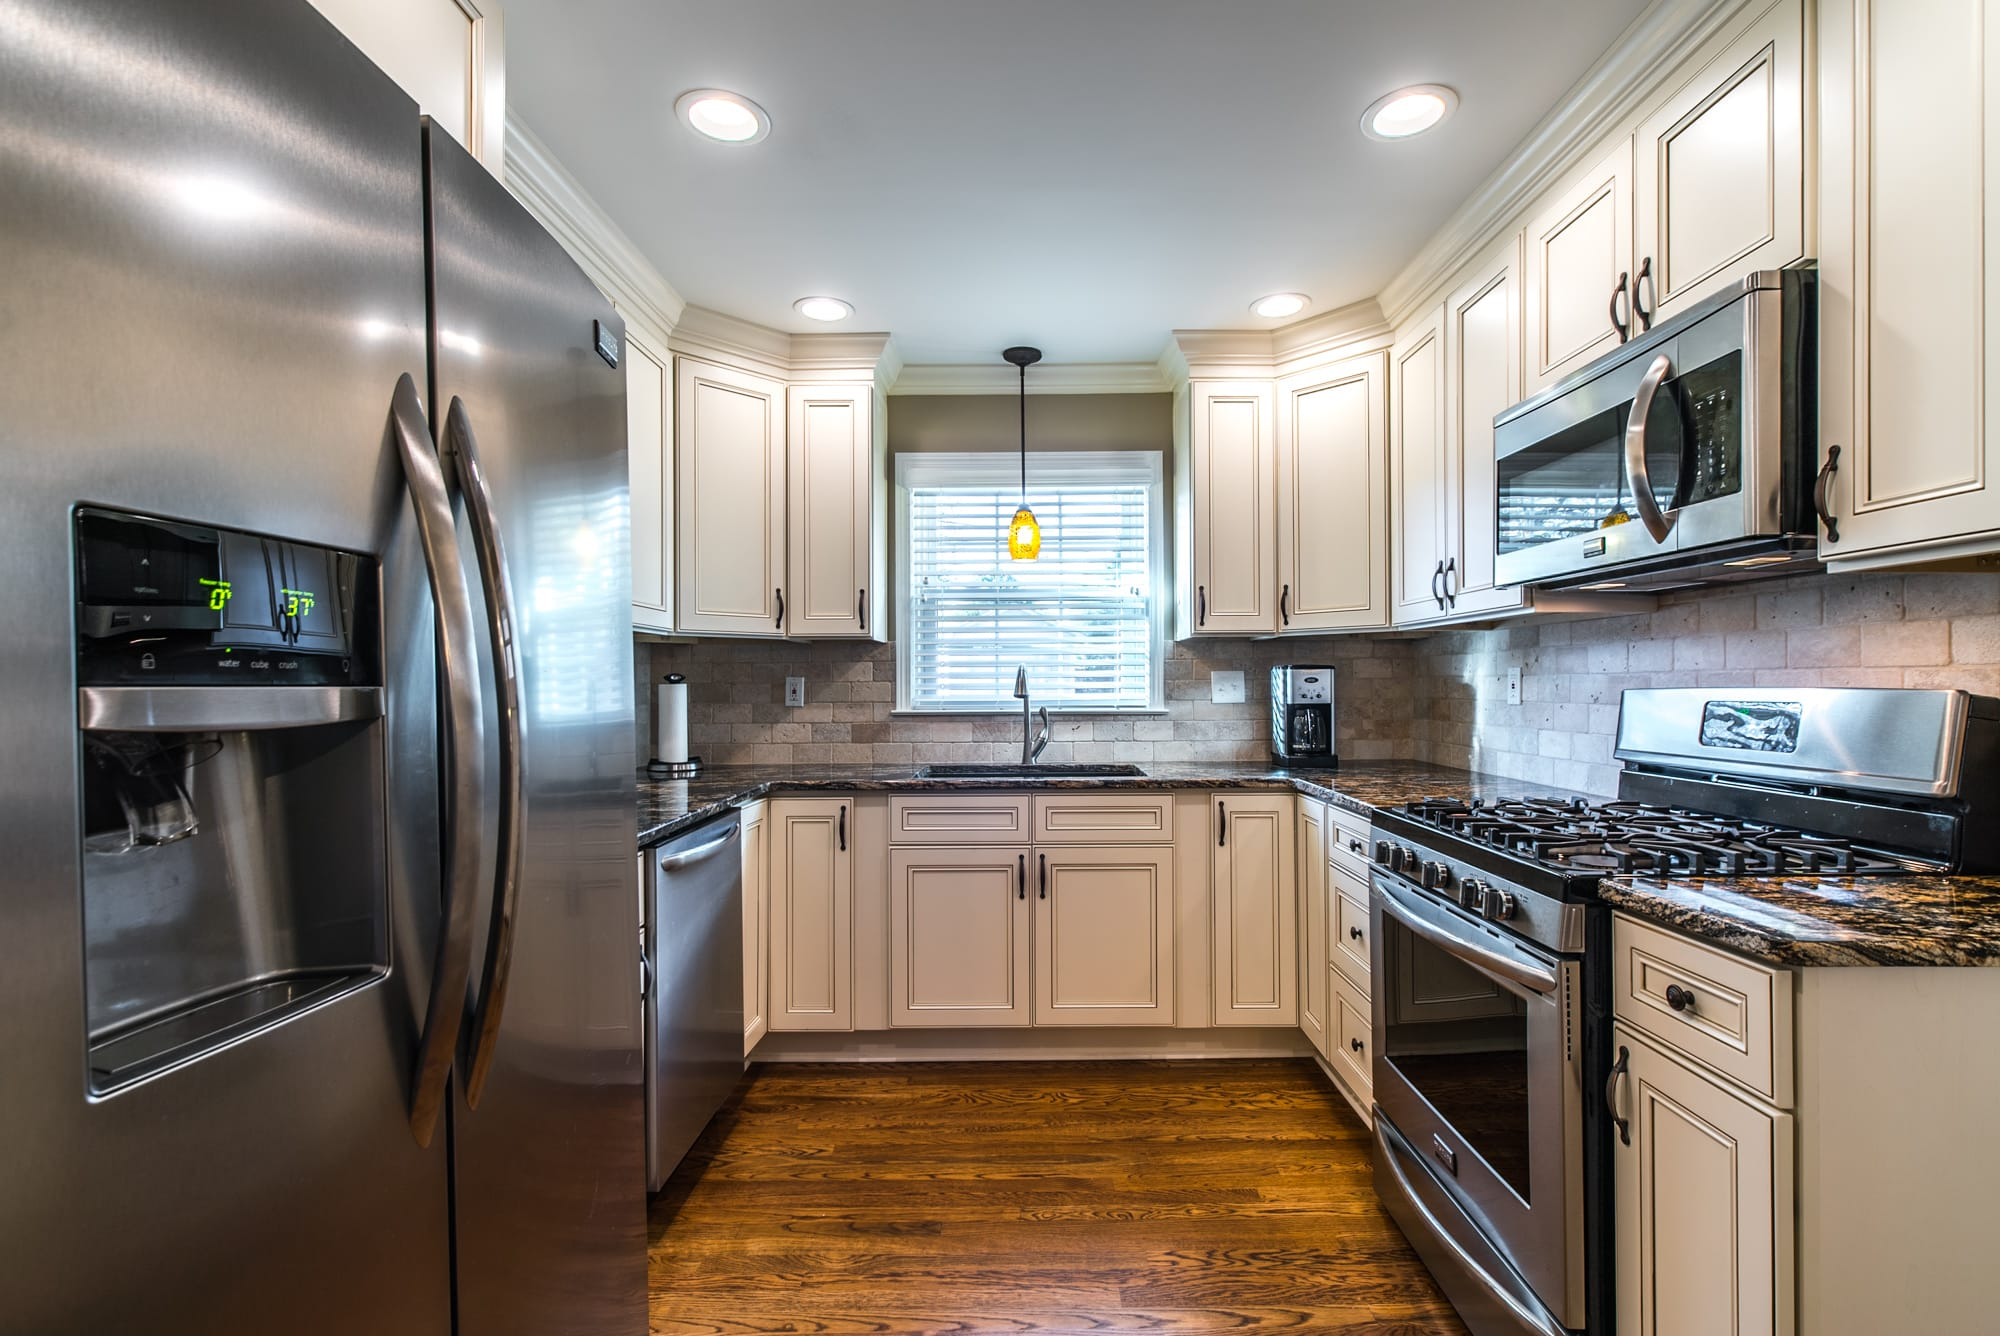 charlotte kitchen cabinets fire station custom nc affordable premium quality style york color antique white at east coast granite of